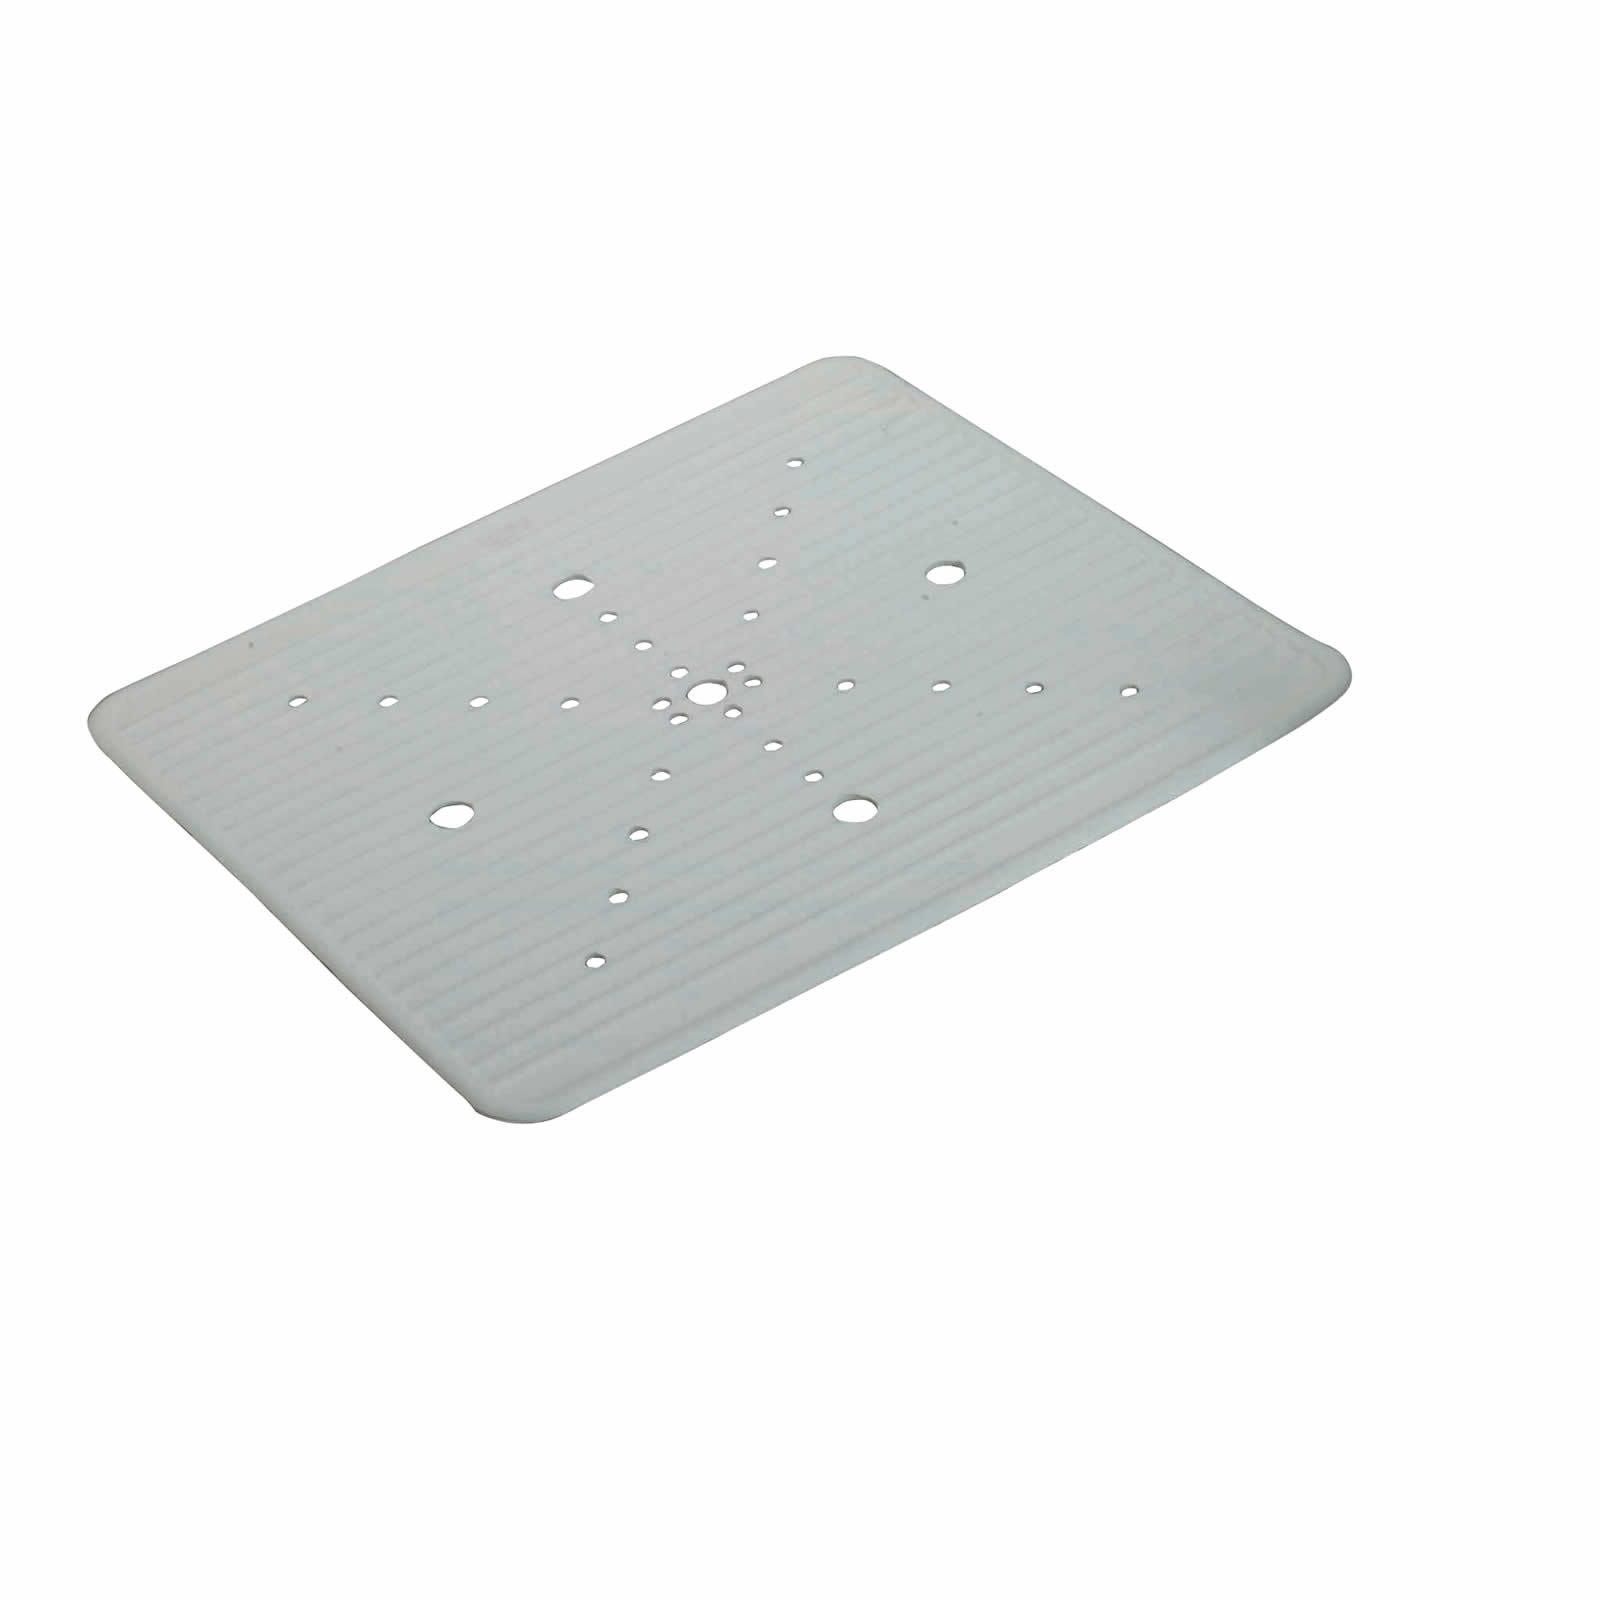 Kitchencraft Rubber Sink Mat Cleaning Accessories